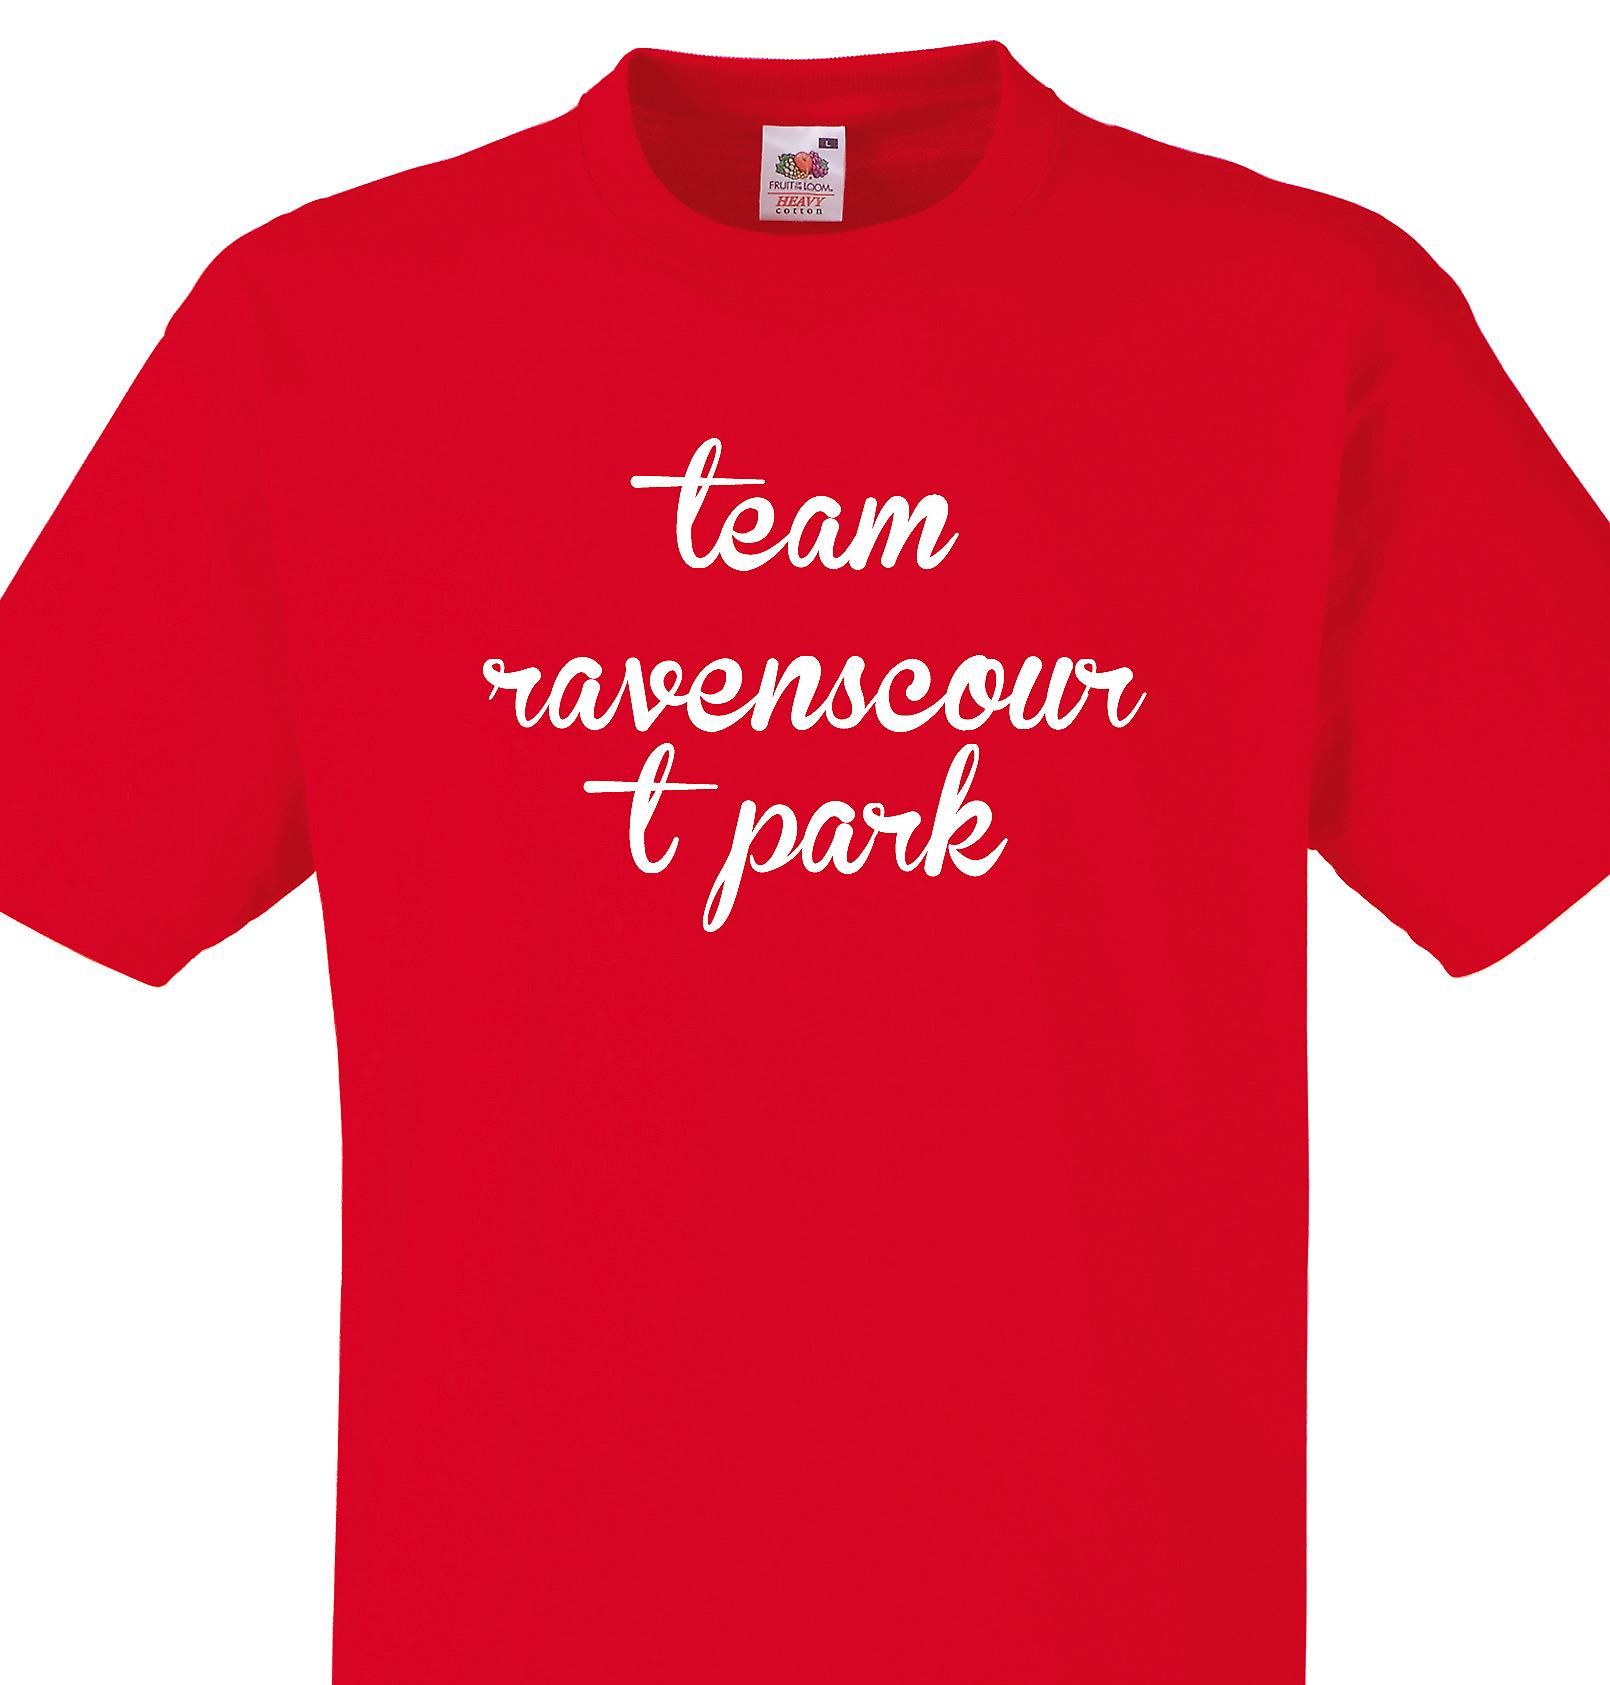 Team Ravenscourt park Red T shirt